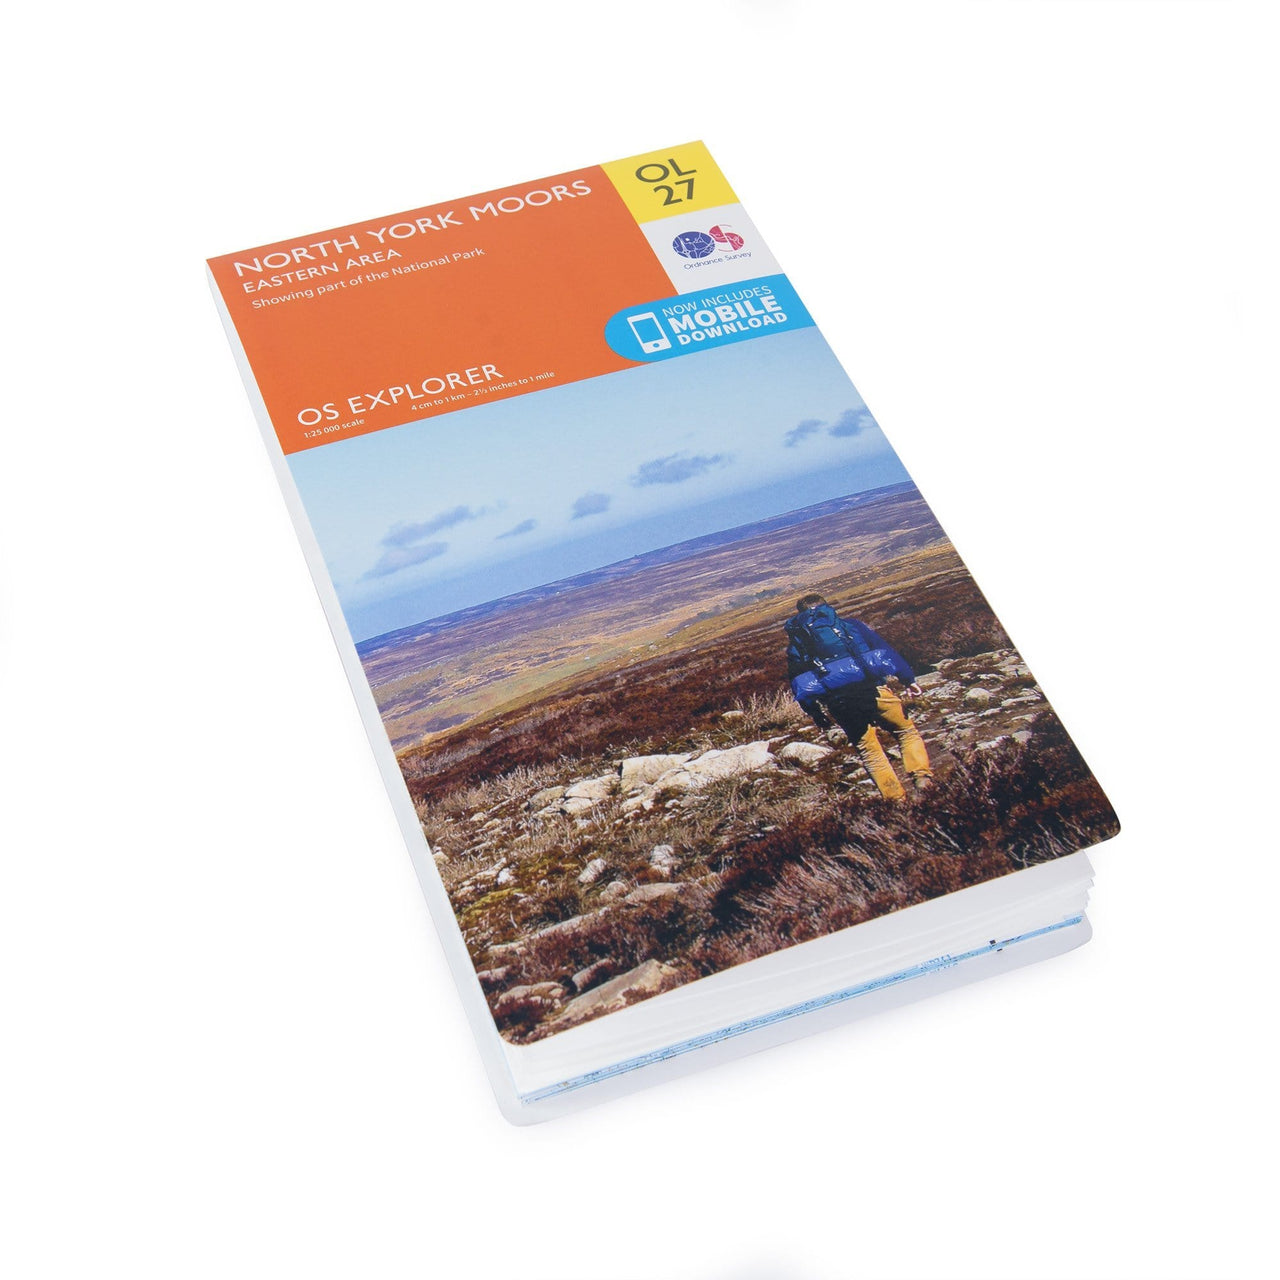 OS Explorer Maps: North York Moors - East